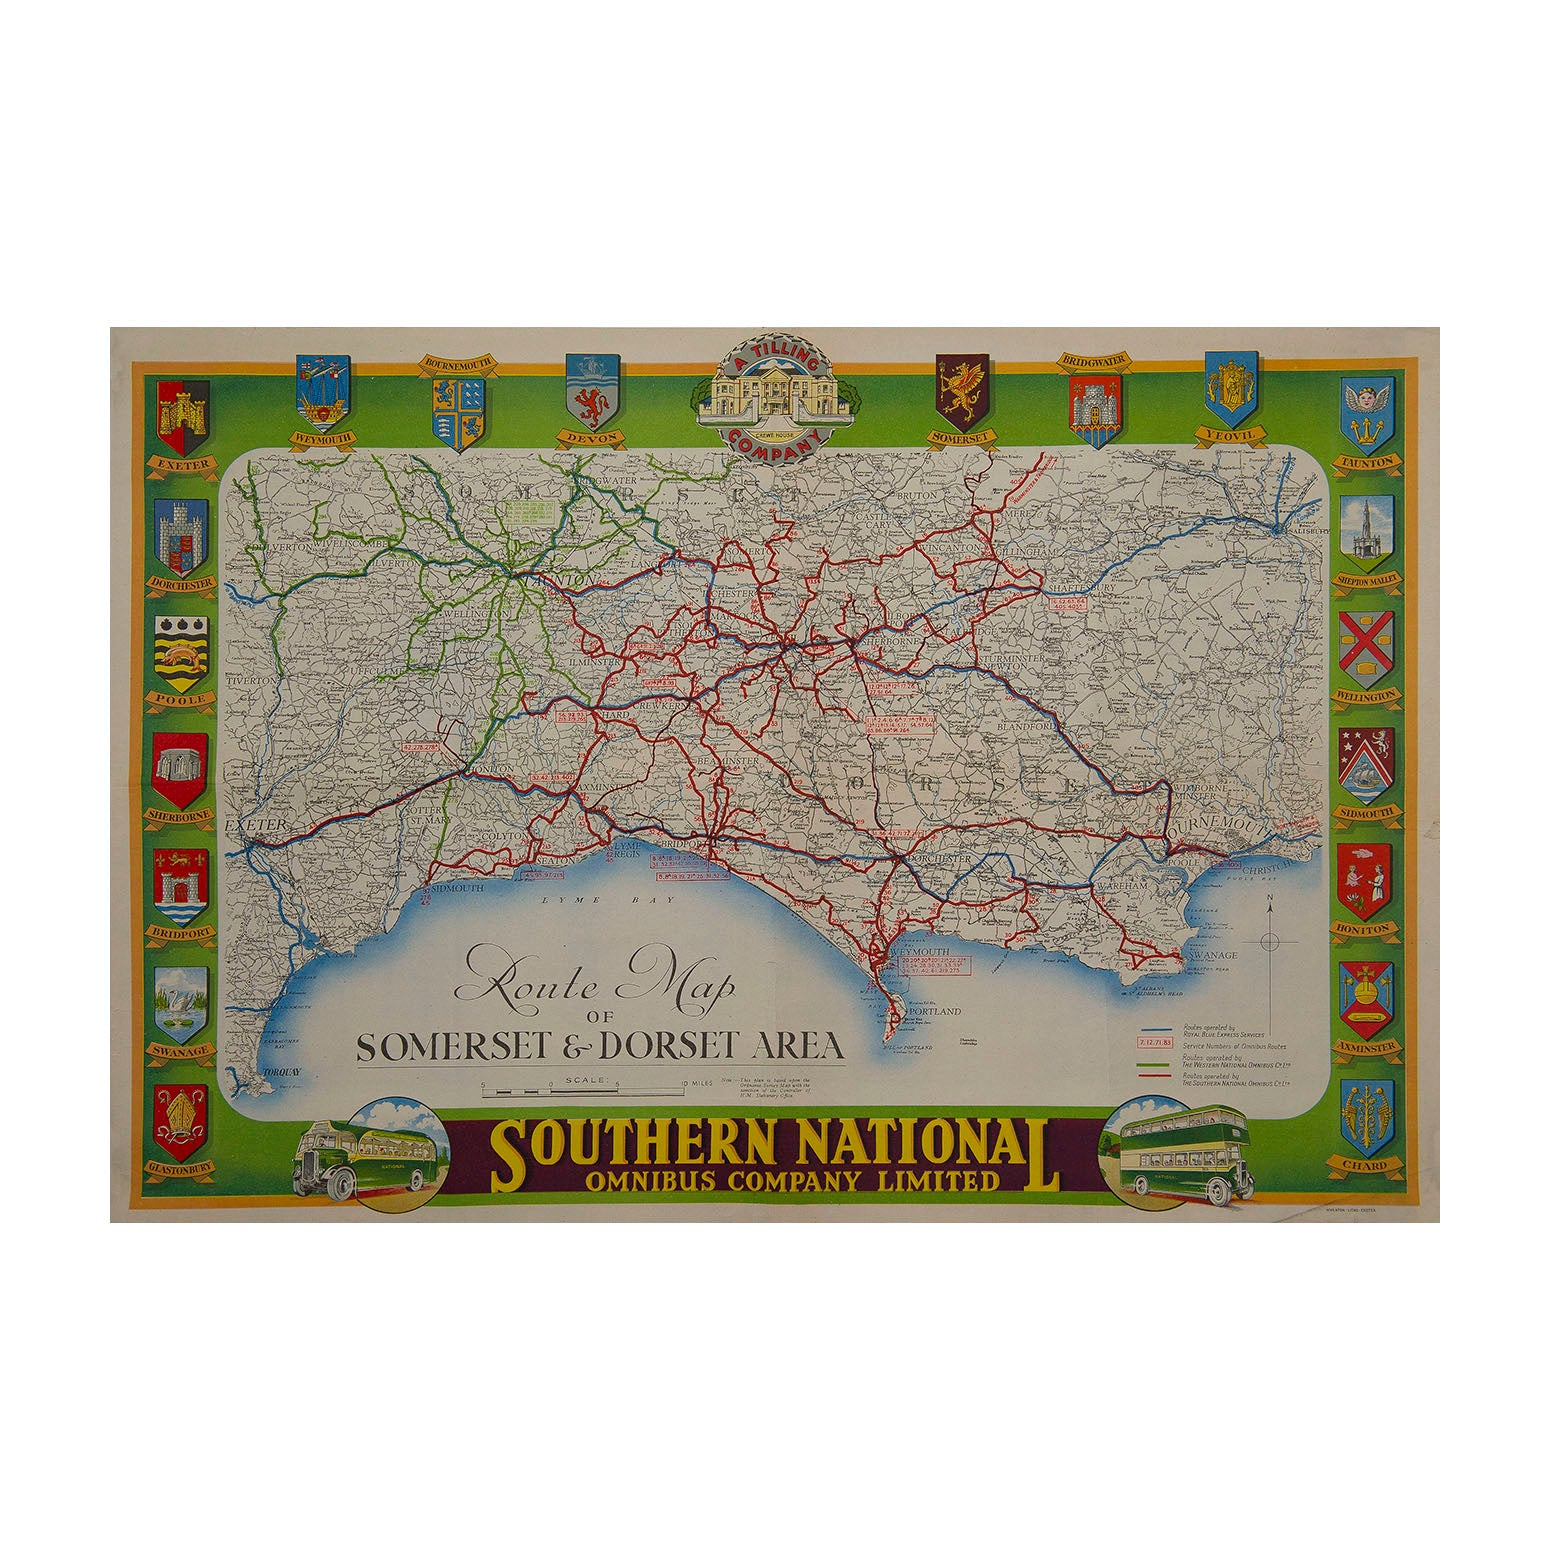 Route Map of Somerset & Dorset Area, Southern National Omnibus Company